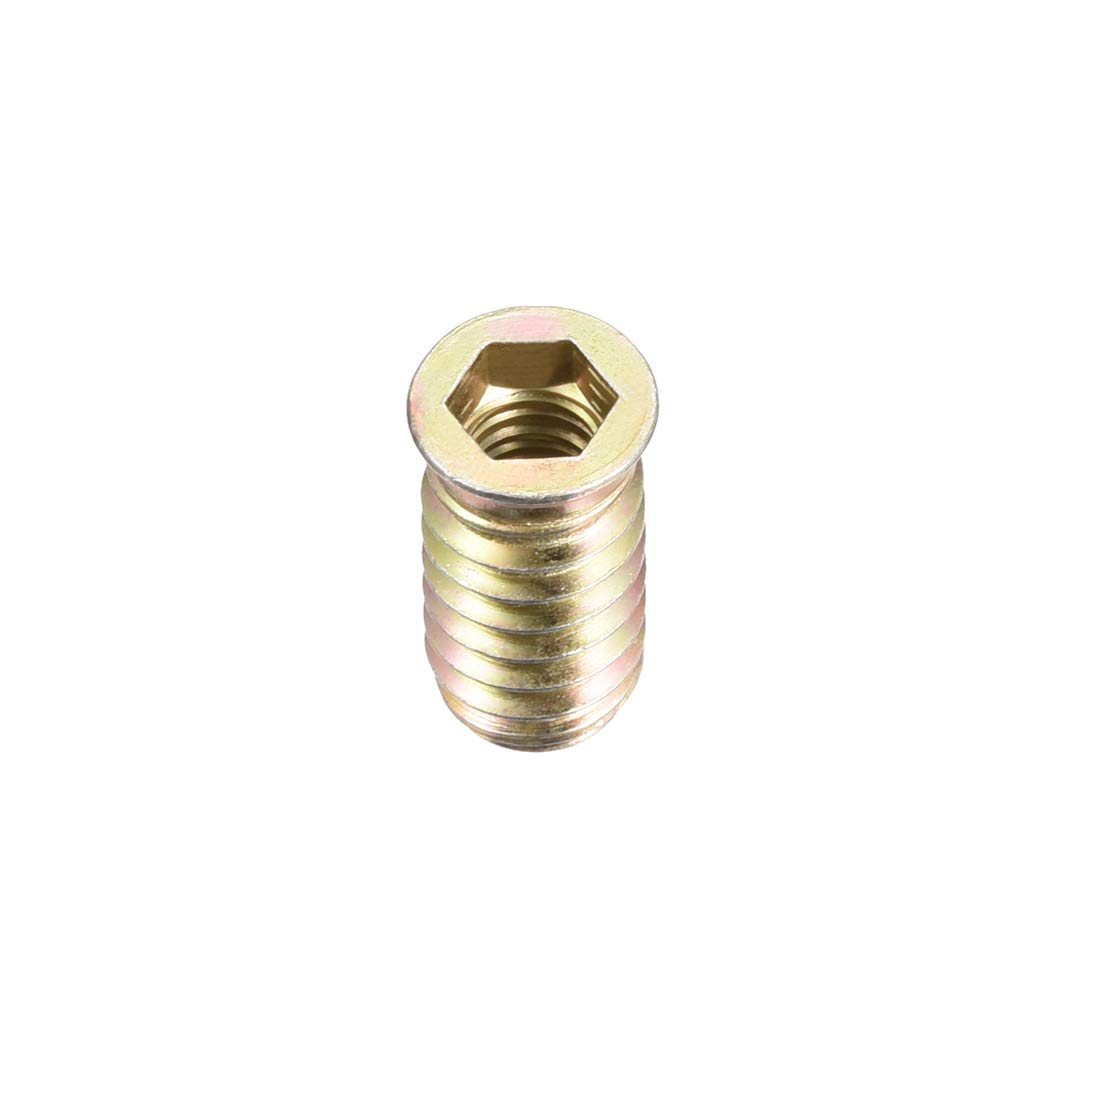 uxcell Wood Furniture M8x25mm Threaded Insert Nuts Interface Hex Socket Drive 50pcs by uxcell